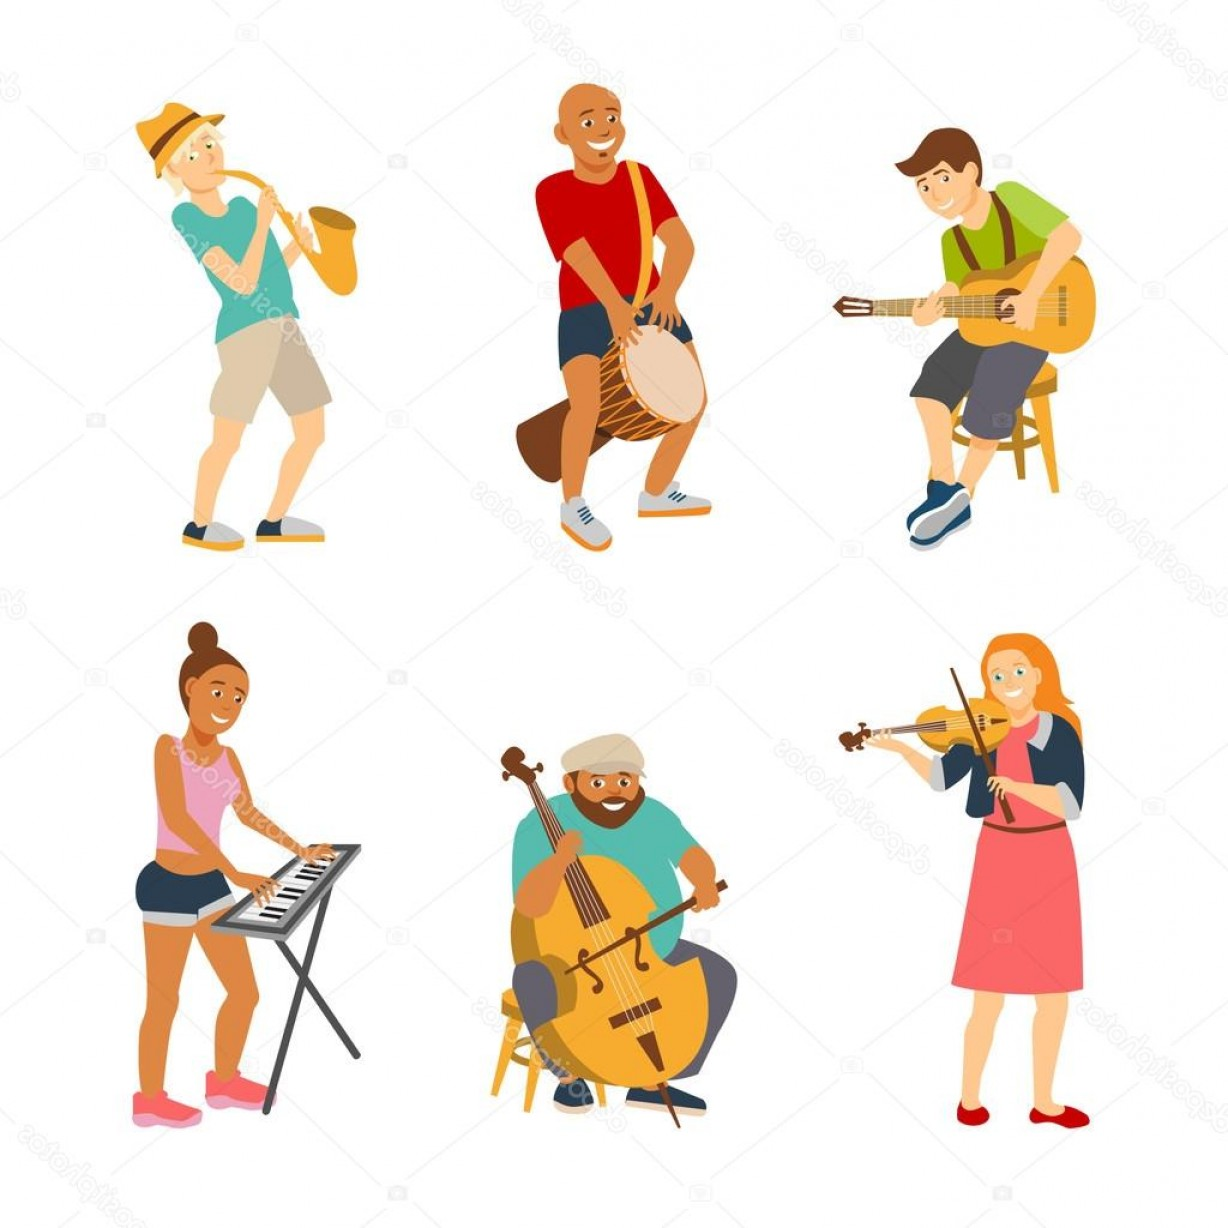 Musician Person Vector: Stock Illustration Musician Cartoon Characters Isolated On